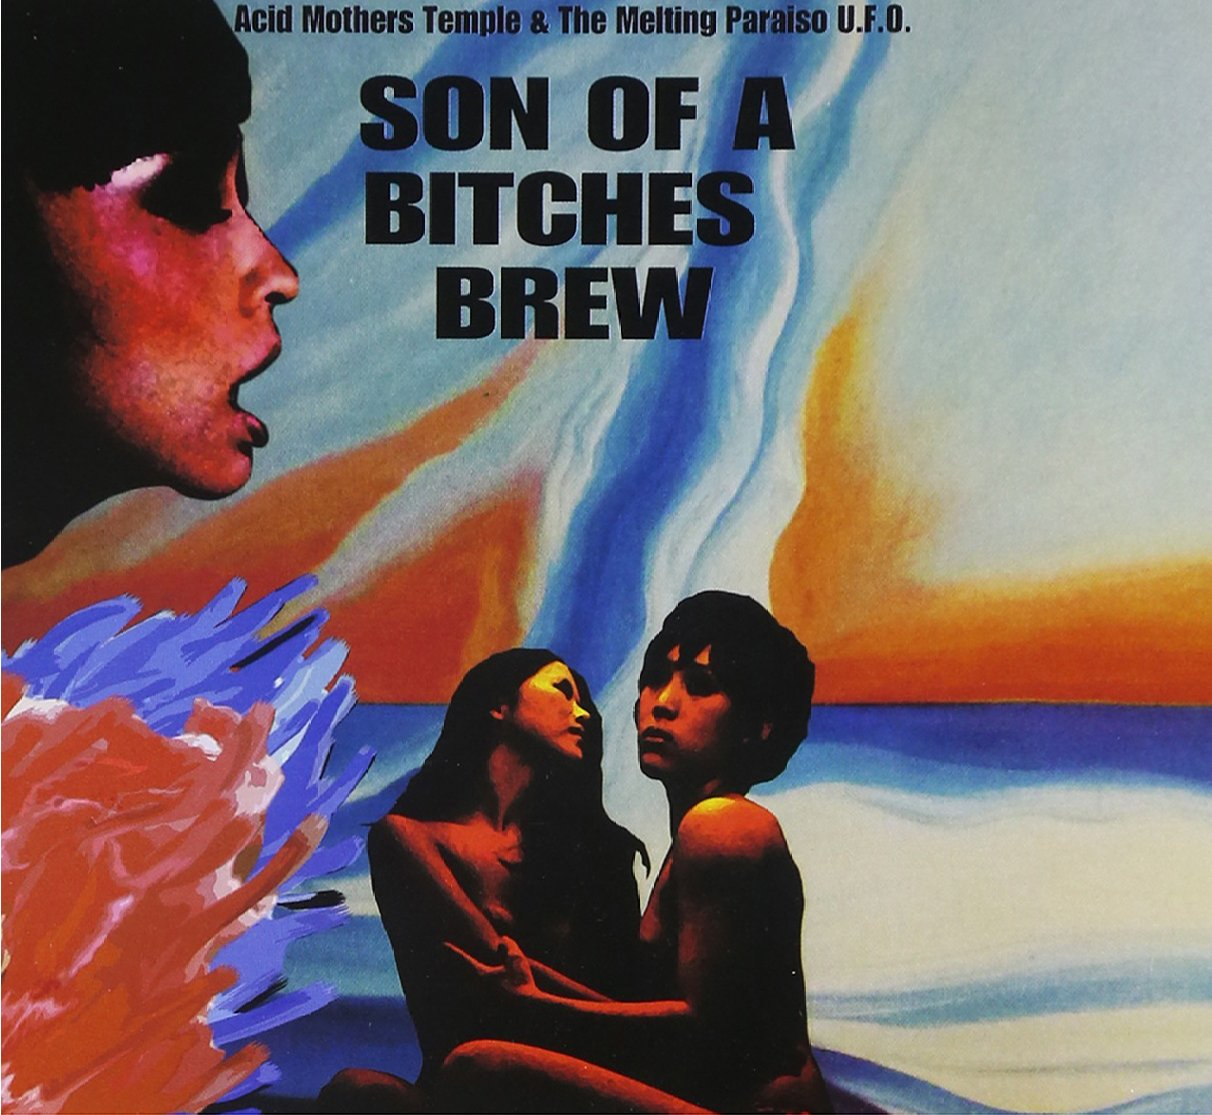 CD : Acid Mothers Temple - Son Of A Bitches Brew (Digipack Packaging)